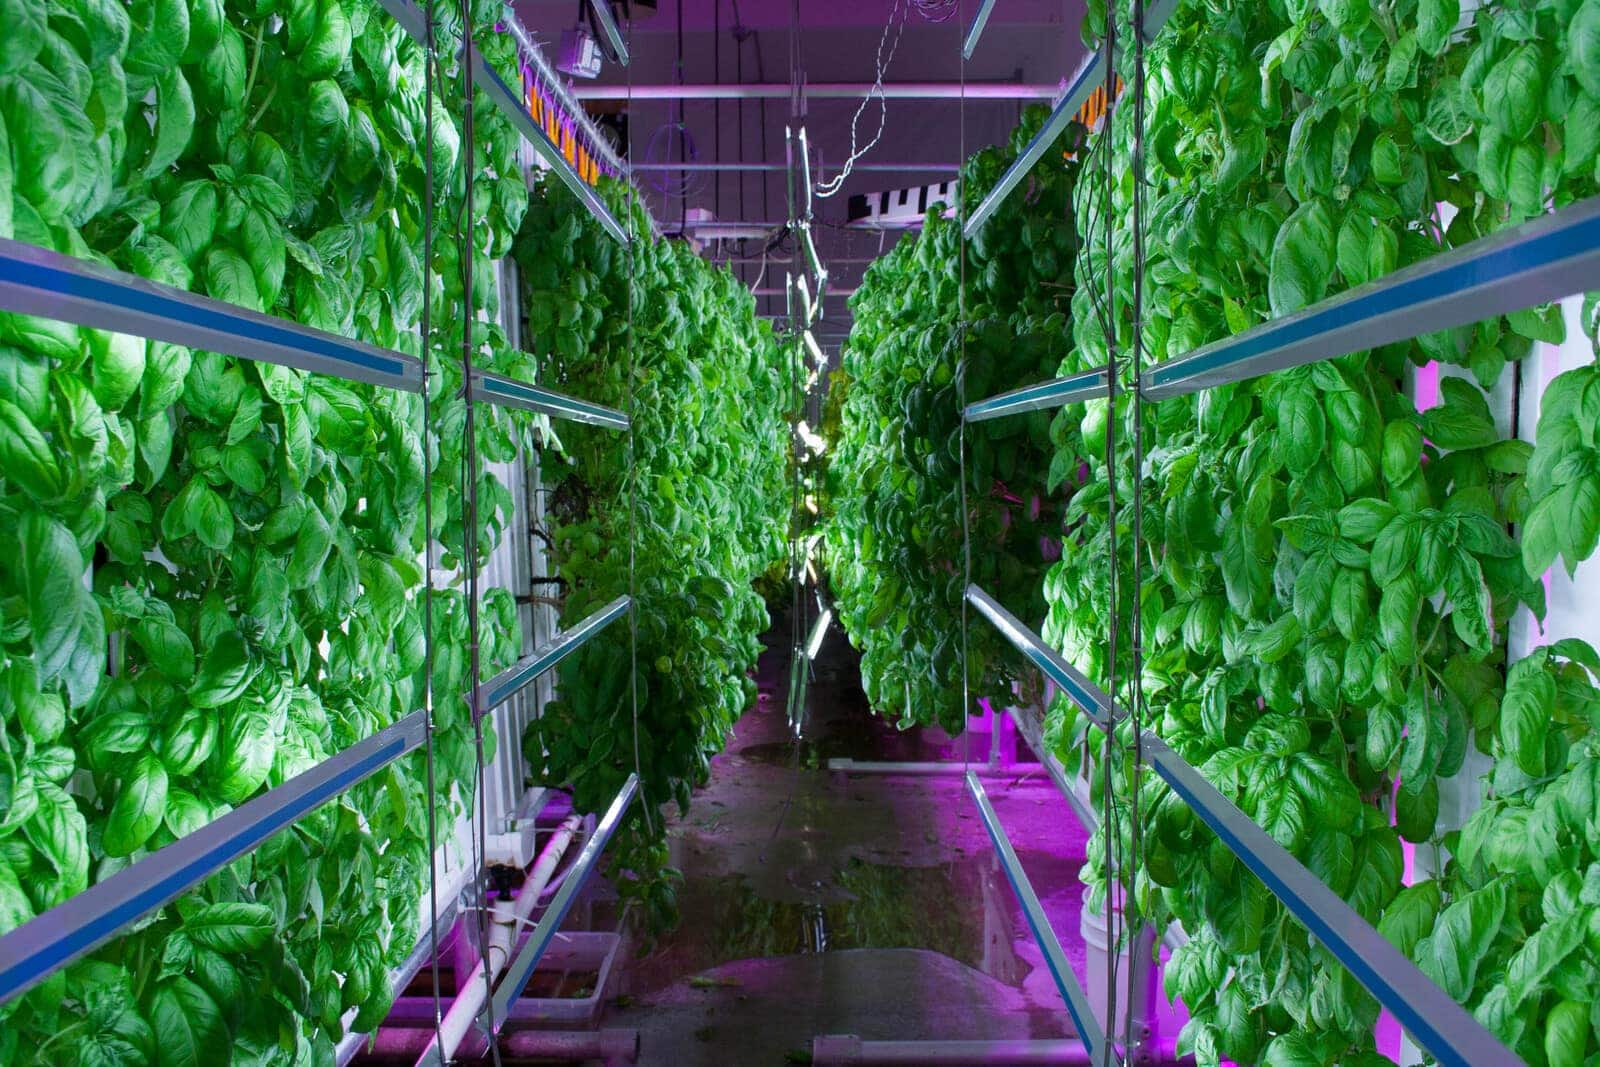 vertical farm abstract Lastly, vertical farming is inherently more sustainable by stacking farms vertically, the productivity per unit of land can be many times higher and arable land can be saved for other purposes.